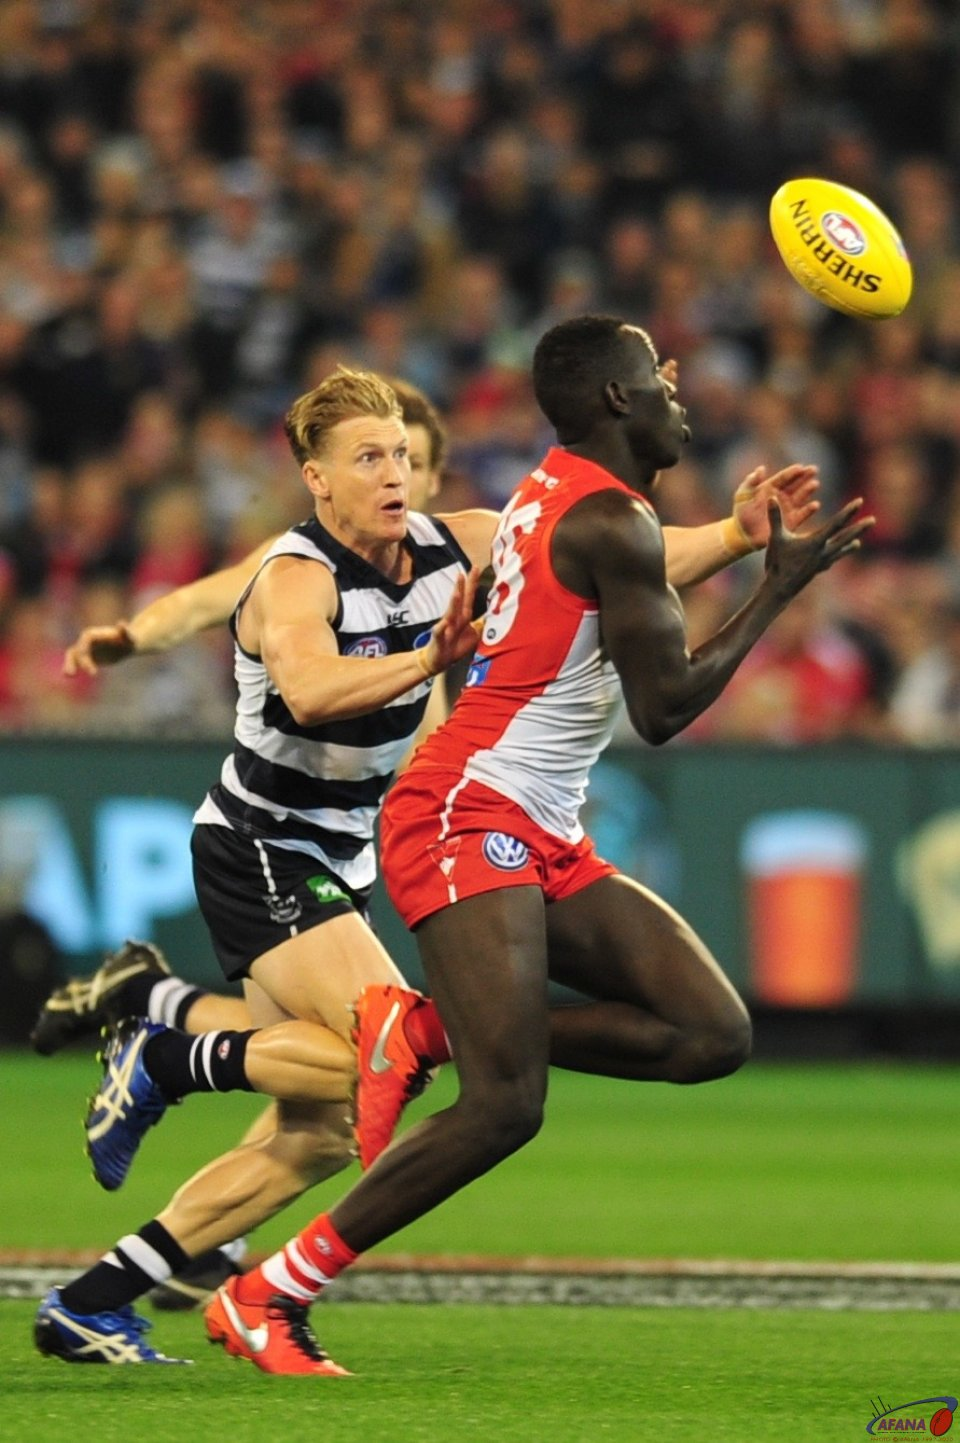 Aliir bursts through running the ball out of the Swans defence